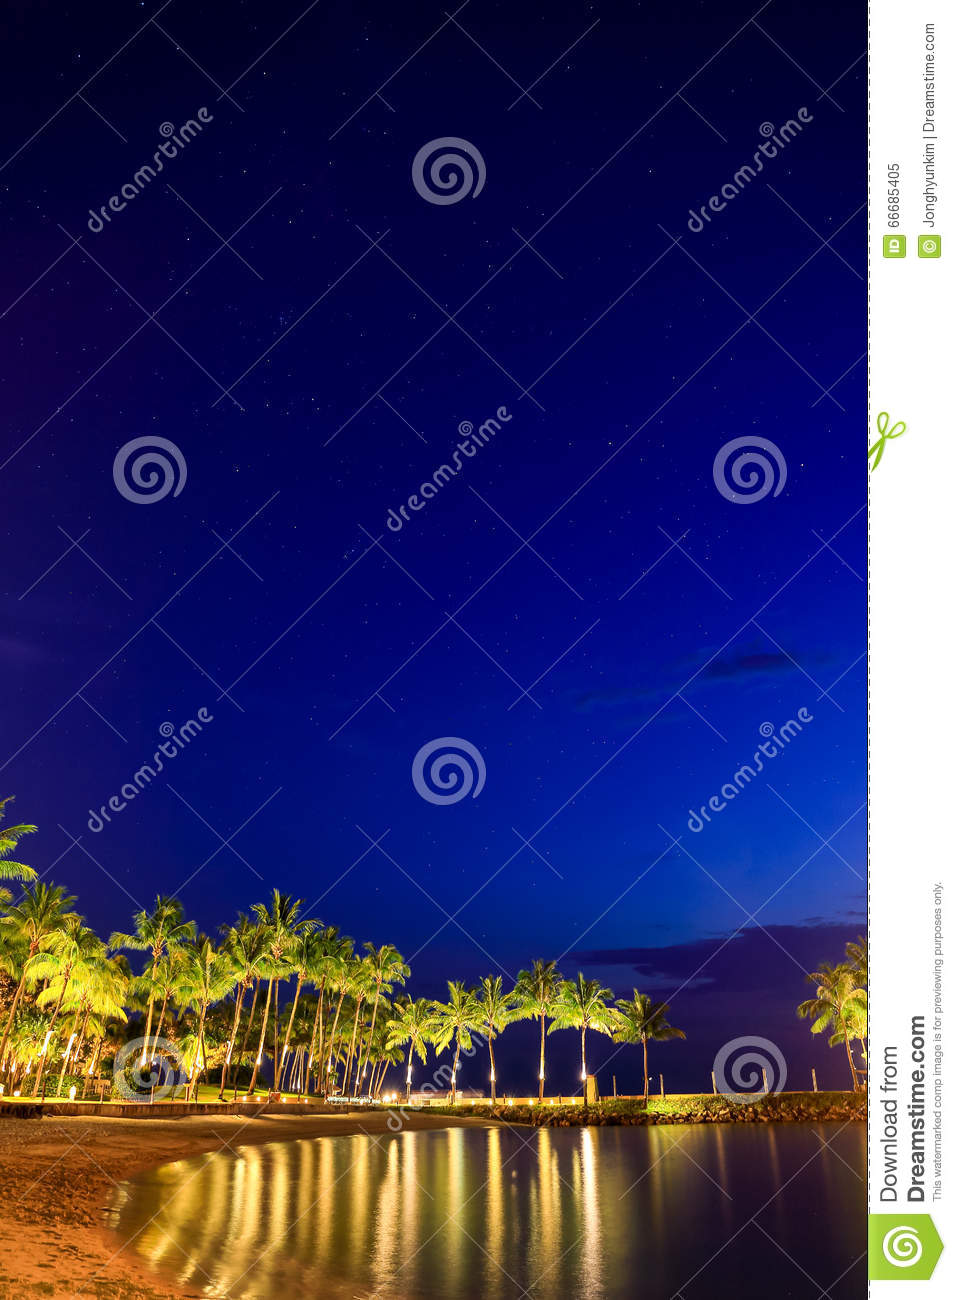 Starry Night. Stock Photo - Image: 66685405